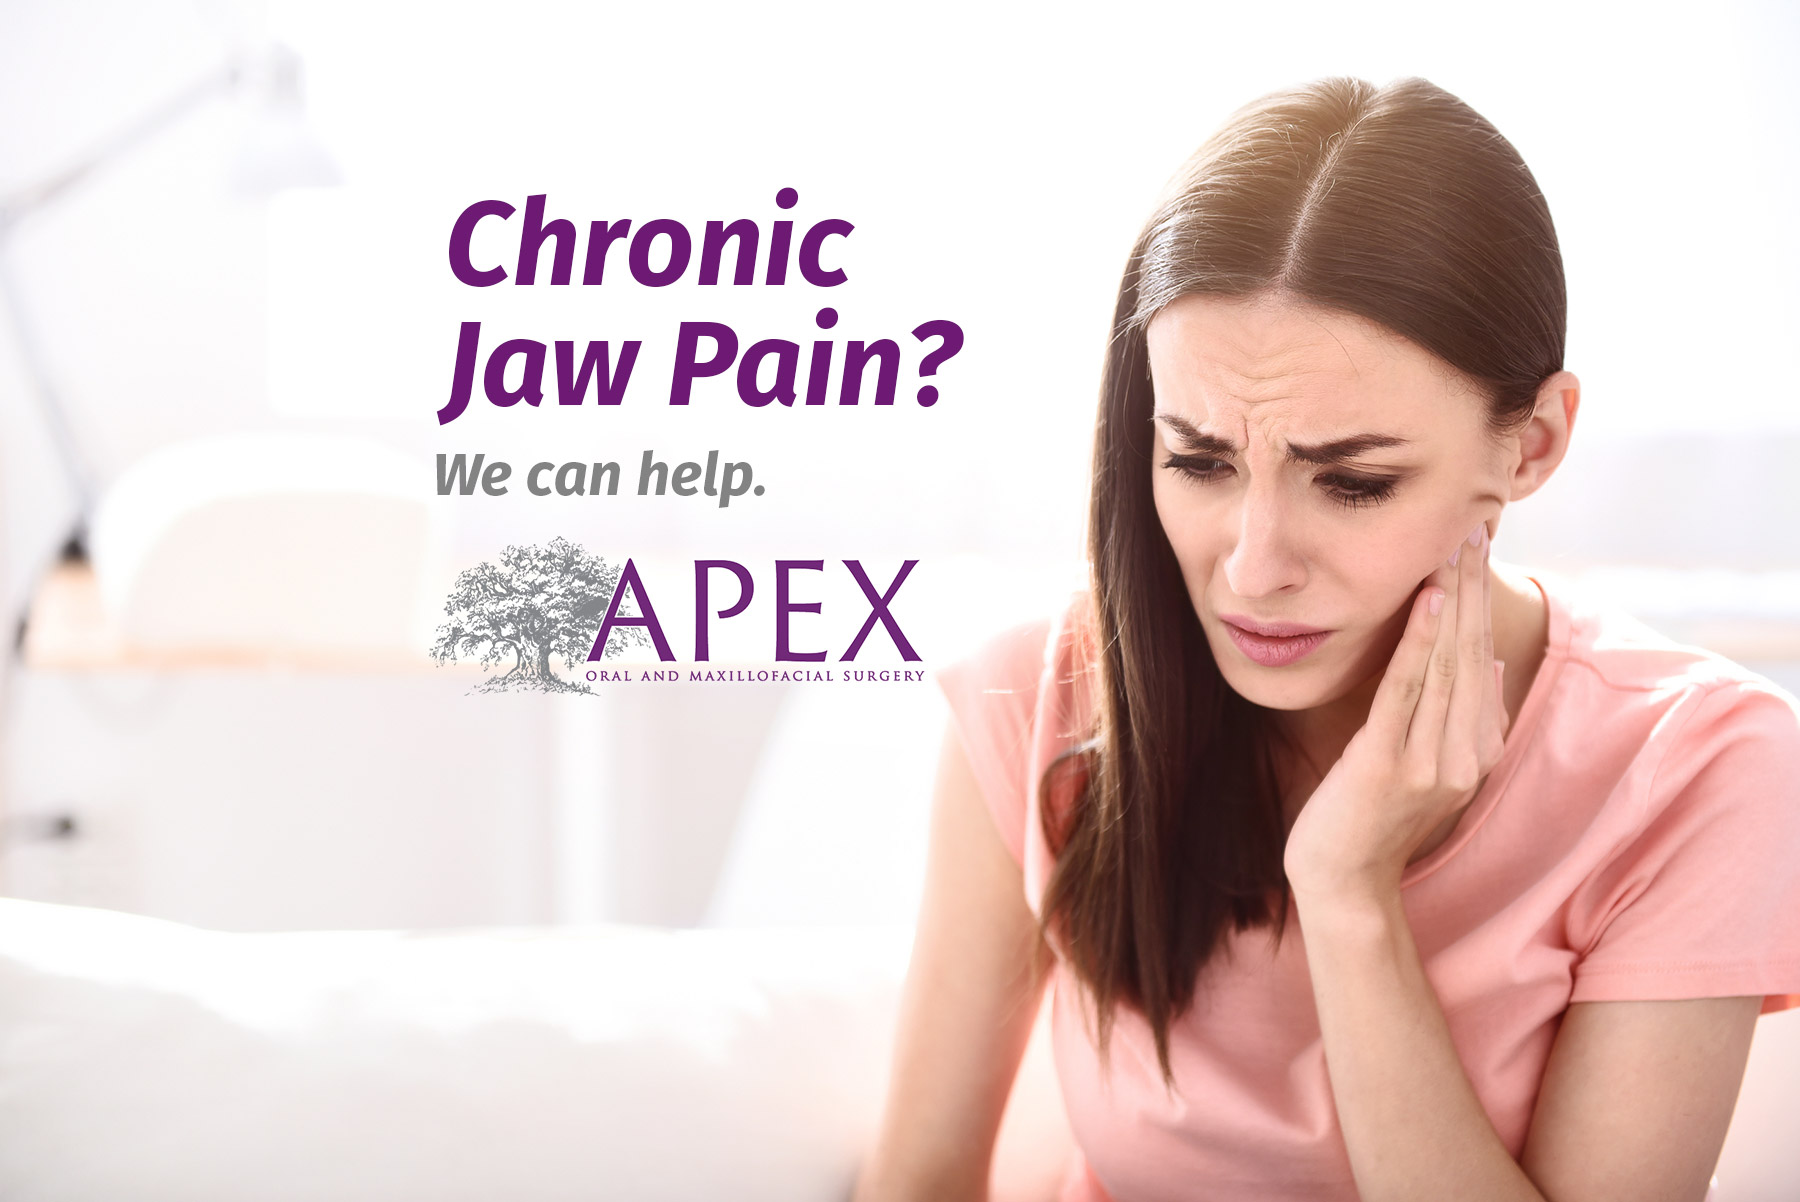 corrective jaw surgery for jaw pain Mt Pleasant SC